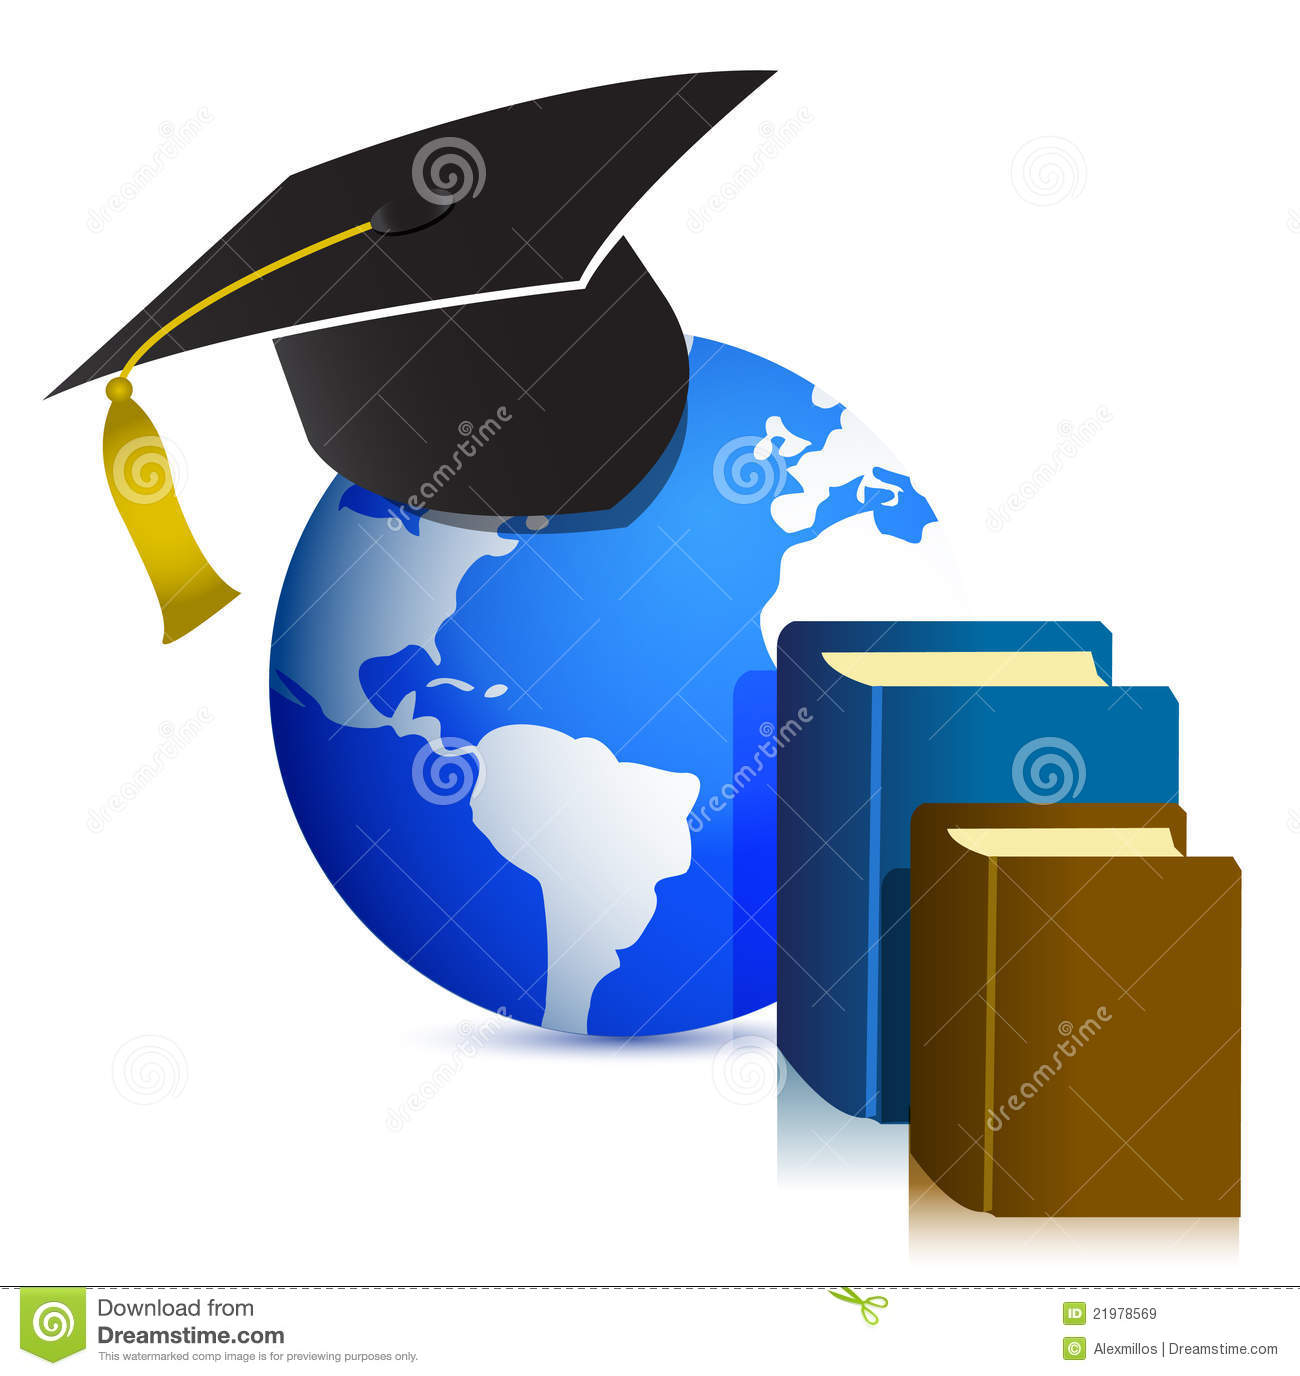 Global Education Concept Design Illustration Royalty Free Stock ...